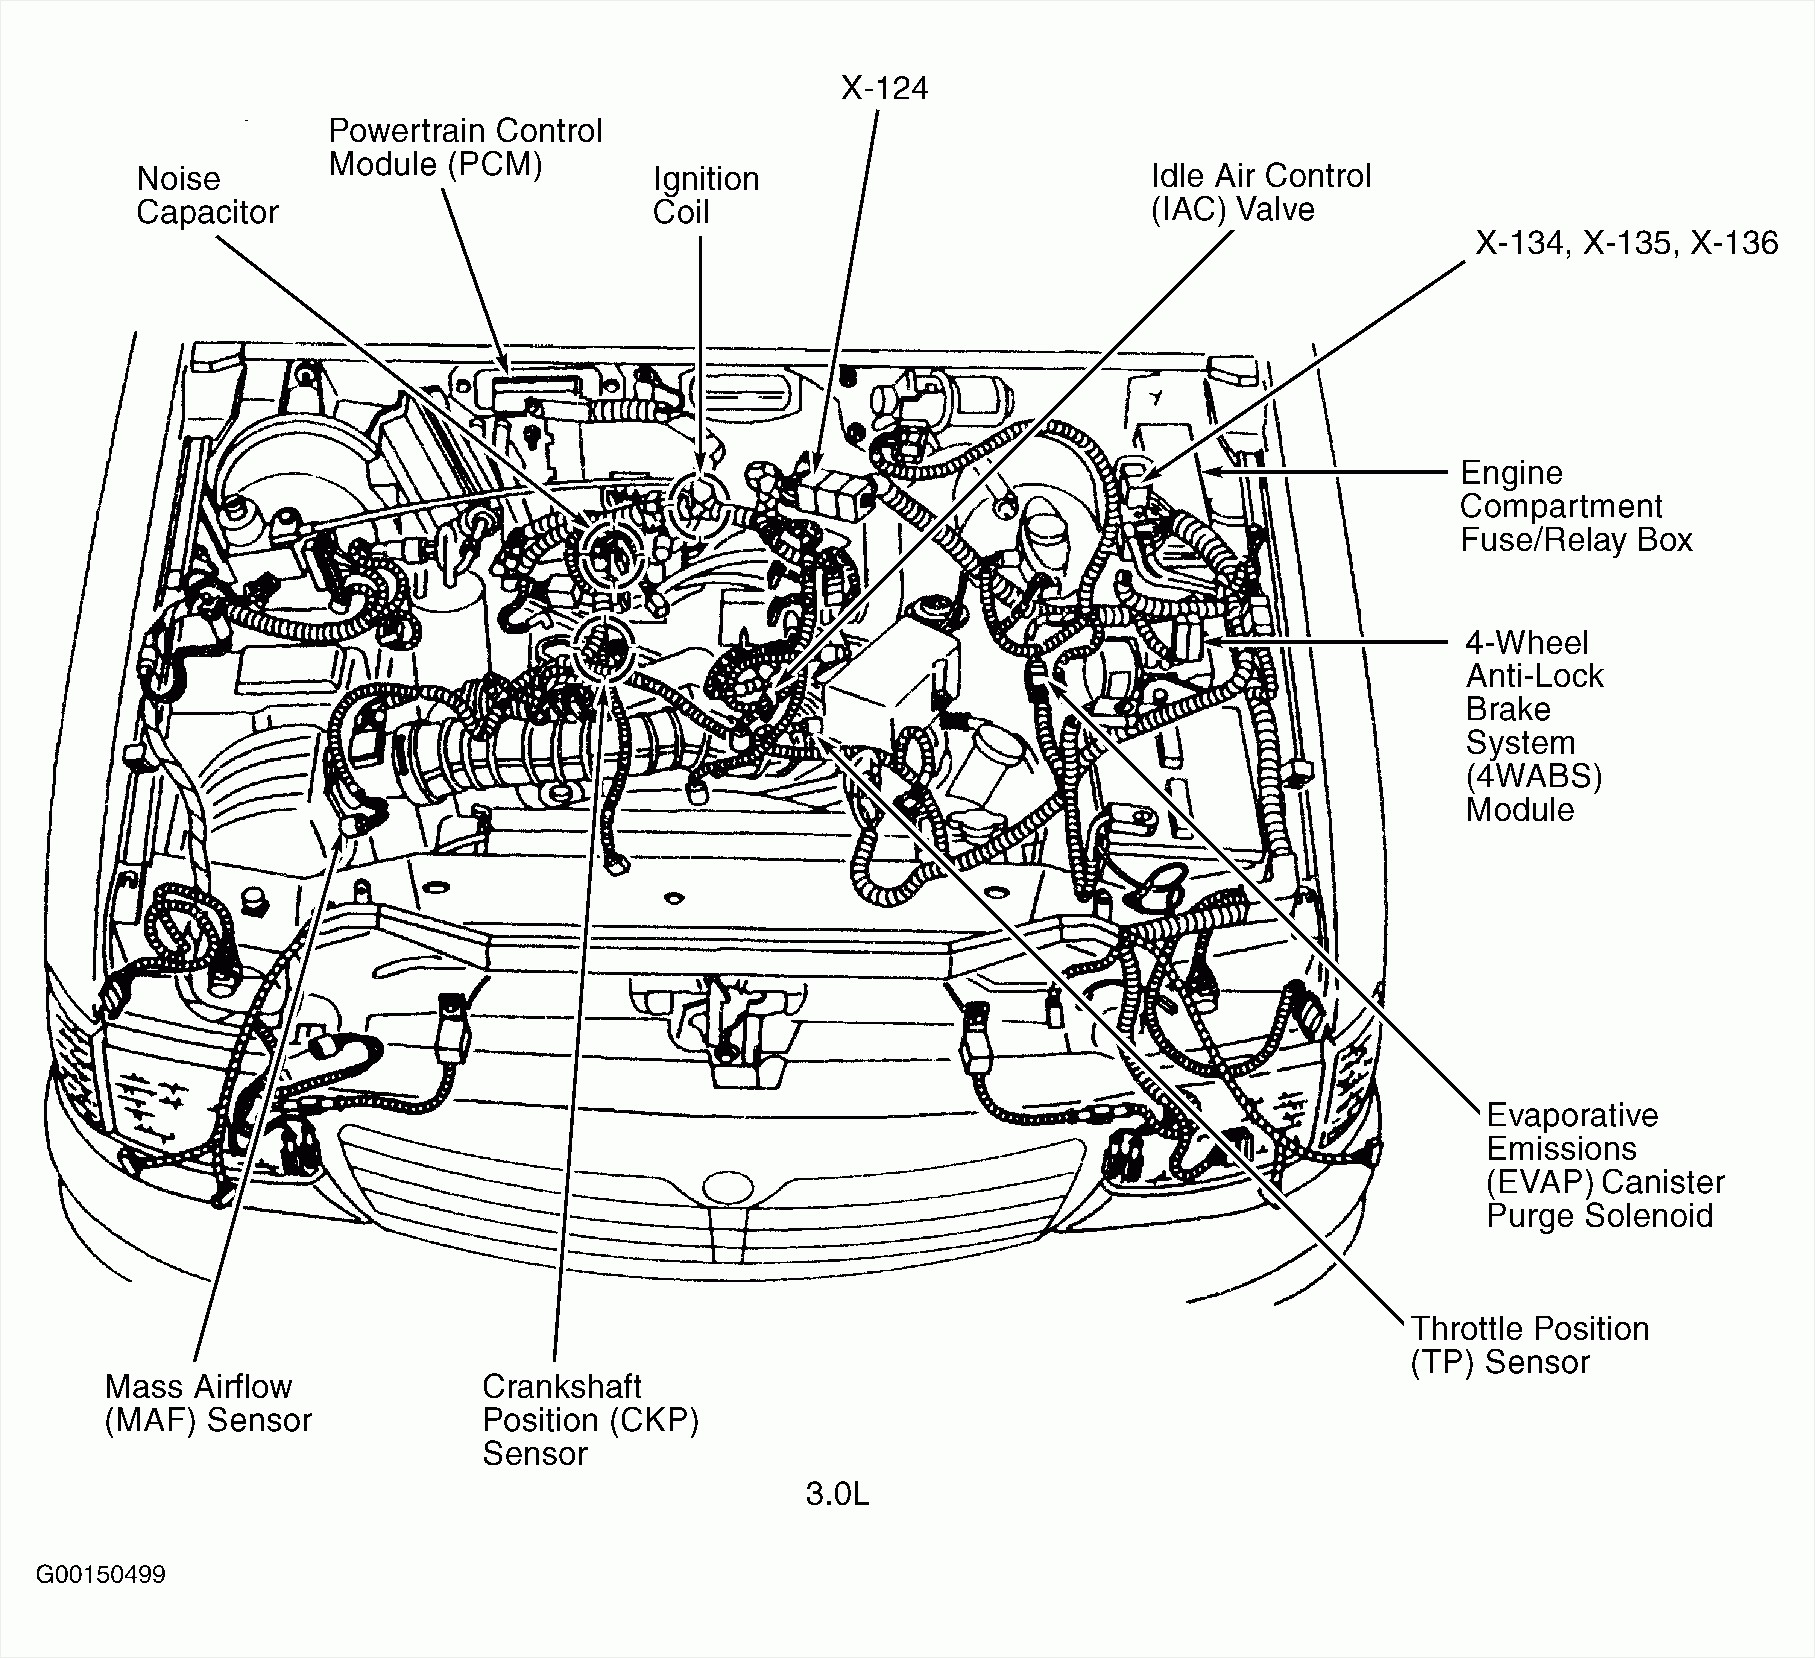 toyota 3 0 v6 engine wiring diagram toyota 3 0 v6 engine wiring diagram best site wiring harness Mazda 3.0 V6 Engine Diagram 1997 Mazda MPV 3.0 Engine Diagram